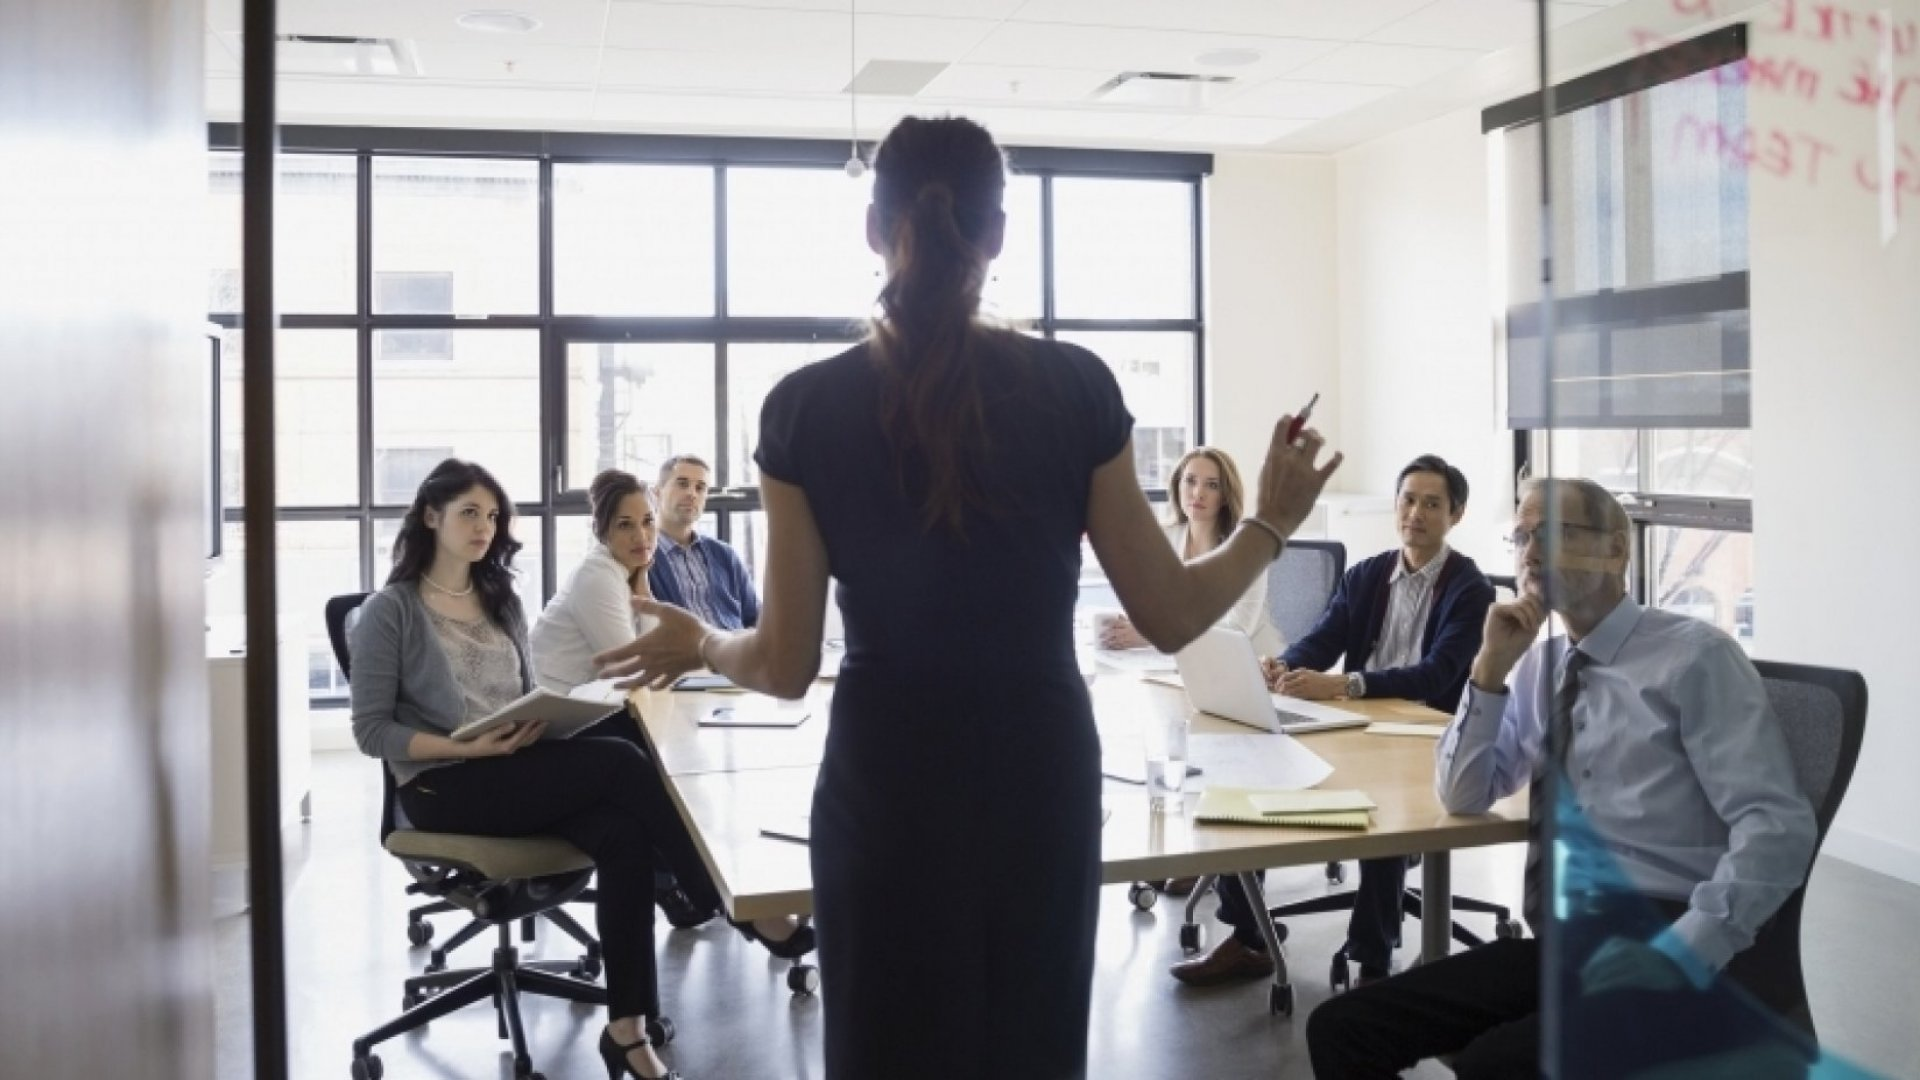 7 Habits That All Great Leaders Have